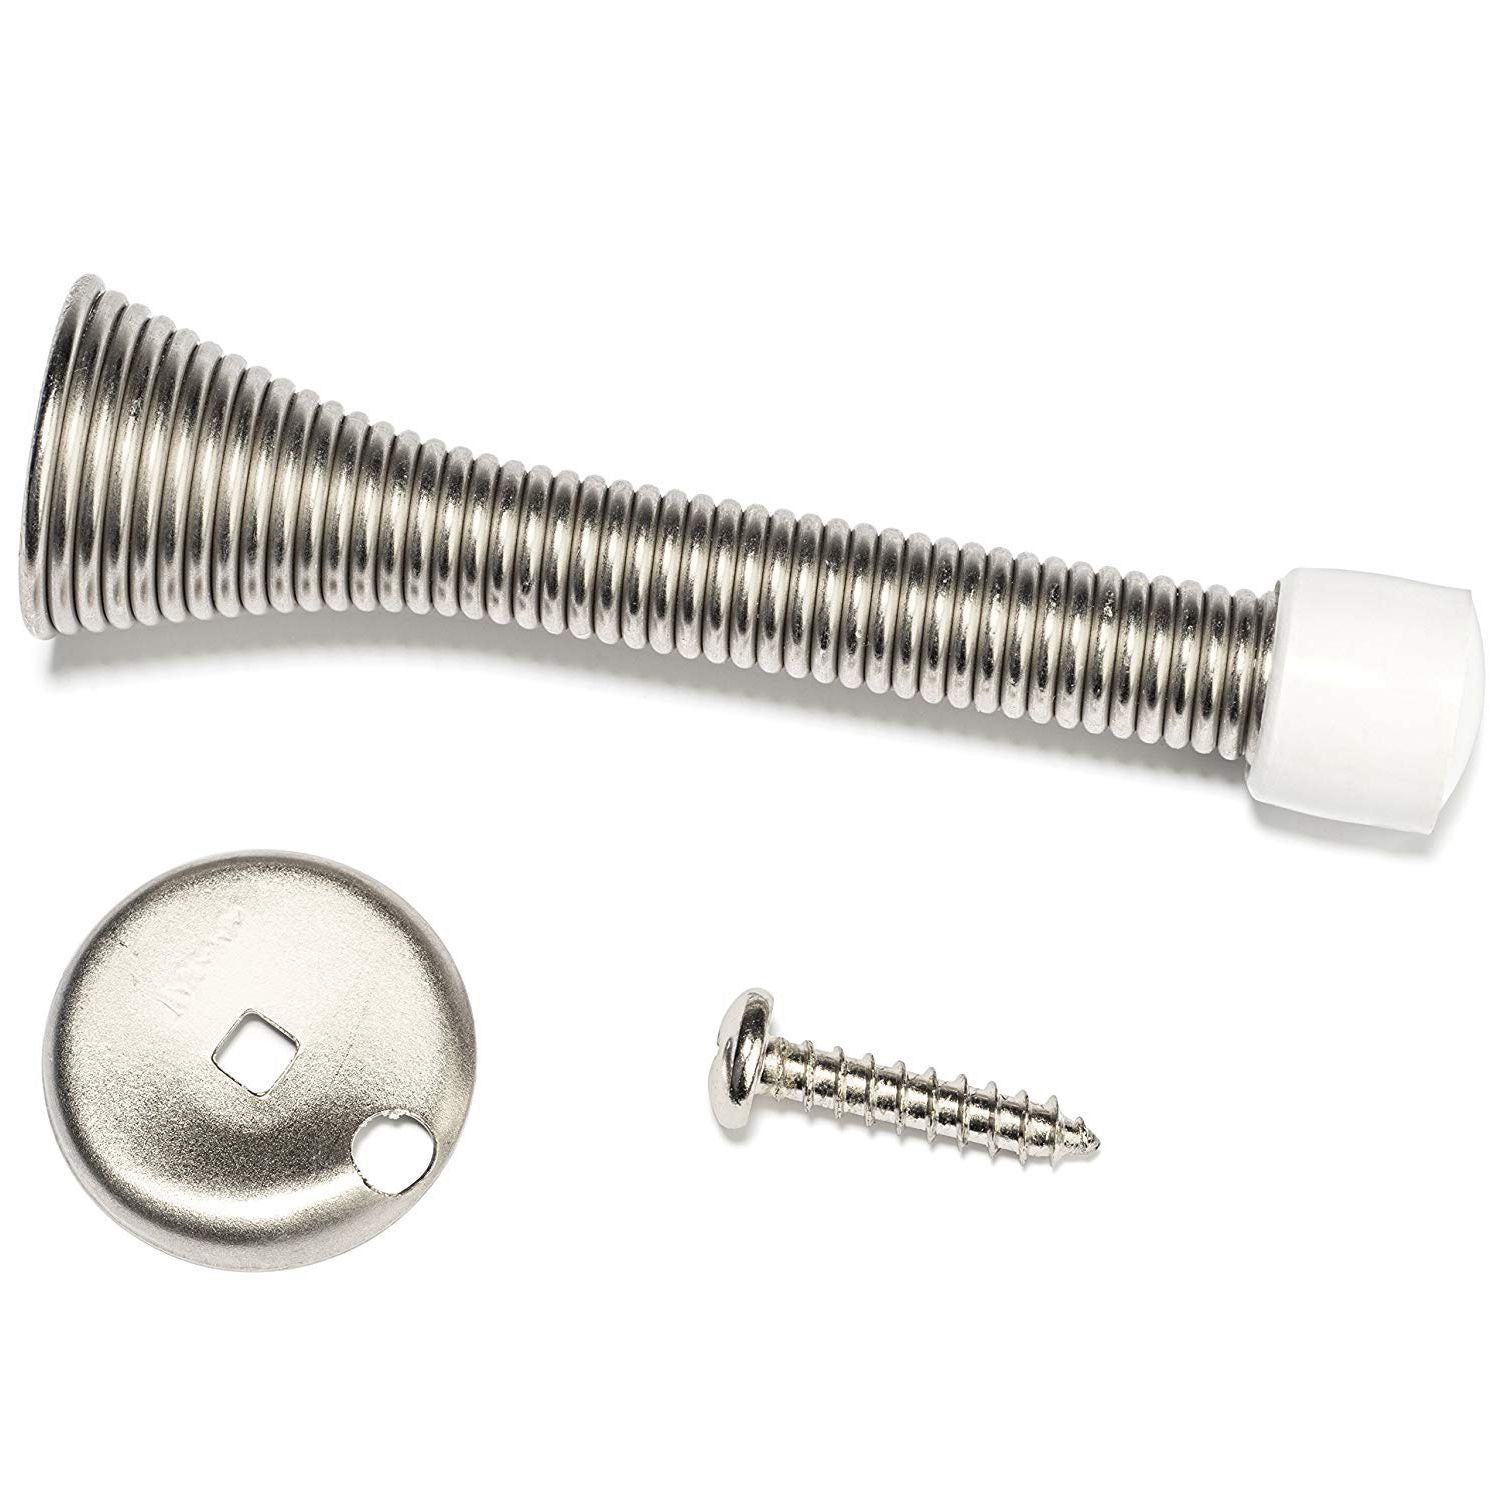 12 Pack Satin Nickel Door Stoppers - 3 inch Flexible Heavy Duty RustProof Screw-In Stainless Steel Spring Stops with White Rubber Bumper Tips - Protects Walls from Damage